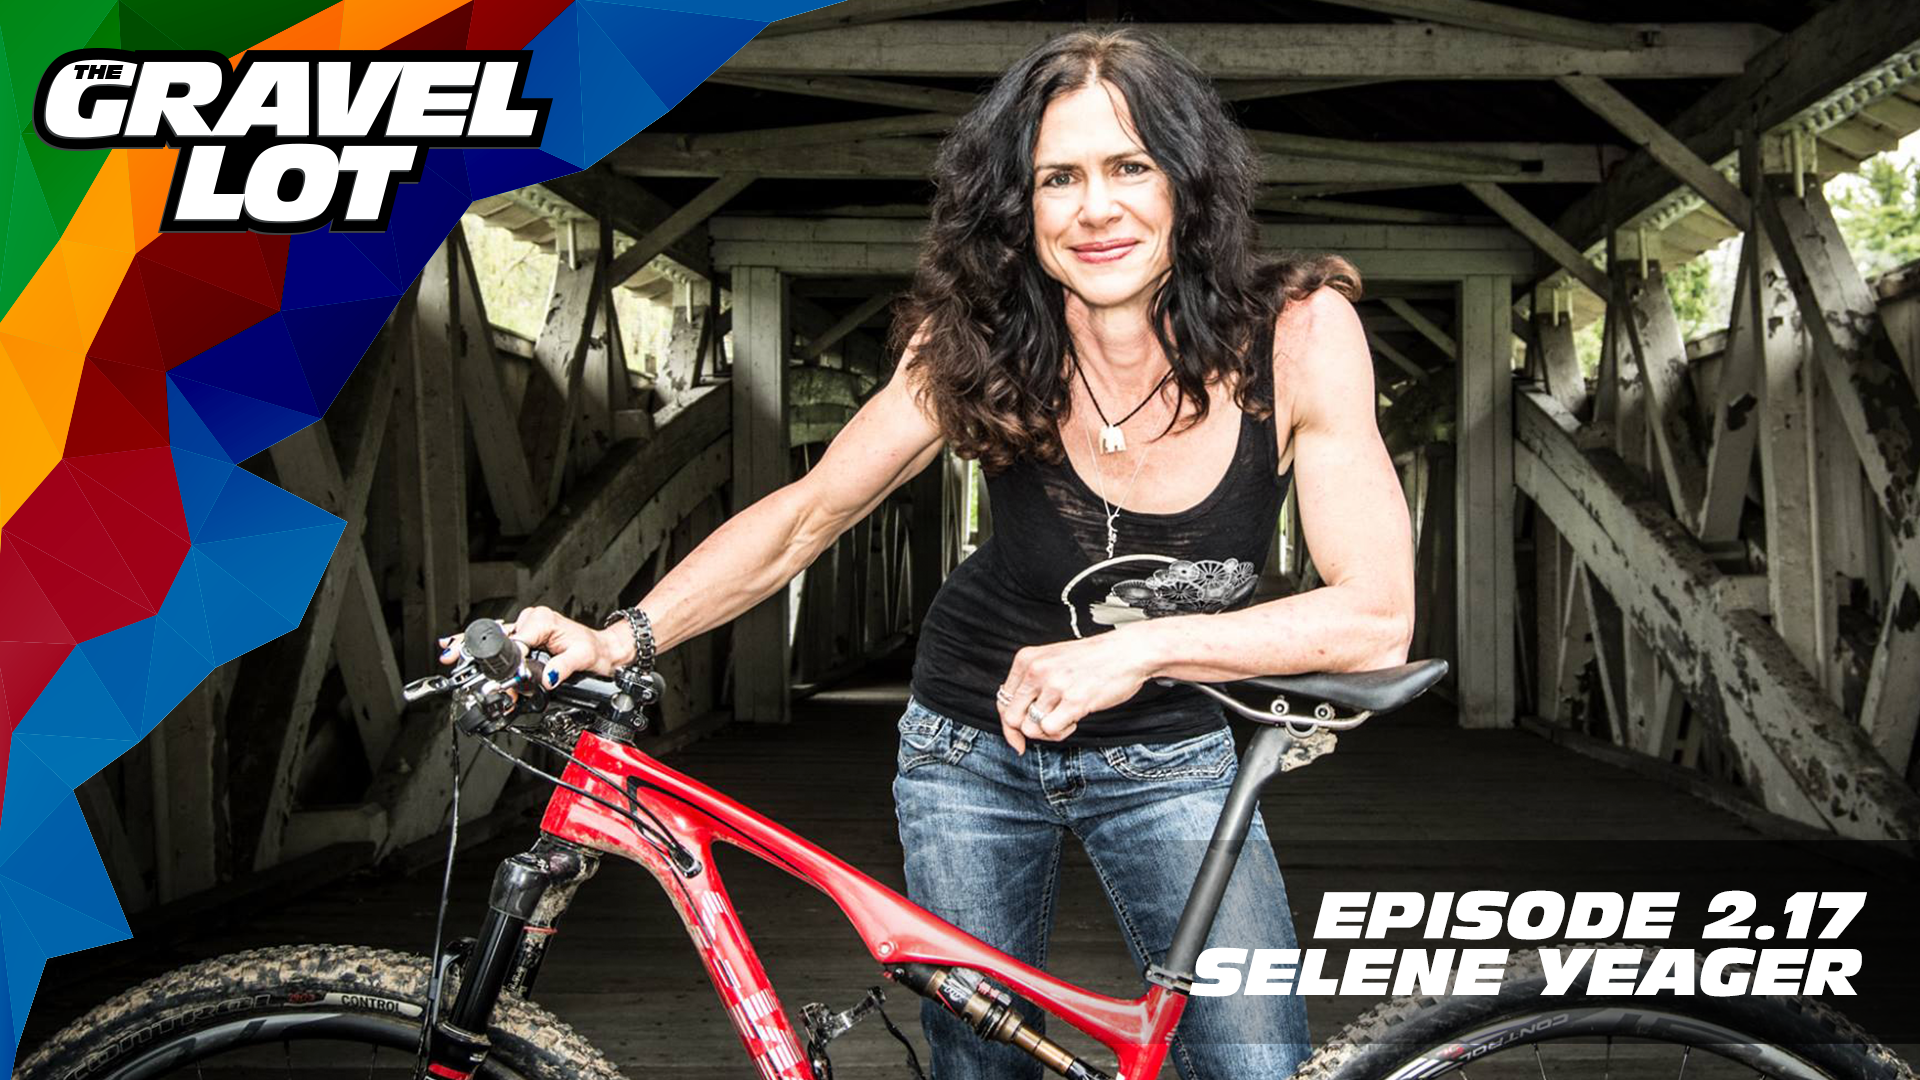 """Episode 69: Selene Yeager is an inspiring ultra-endurance athlete, health and fitness writer, trainer, and SO many other things. She shares her tips on managing life while maintaining a positive mental attitude all while inspiring her readers and followers. Cover photo © Jaime Livingood   DONATE NOW    TGL Spring Fondo Event    Visit The Gravel Lot website for our latest podcast, Real Talk videos, Bonus Content, shop, social media, and everything in between.    Red Kite Ronde Registration    Save 50% on your next RoadID:    Handup Gloves: Use code """"PEBBLES"""" for 20% off EVERYTHING in store.    Be Free Ride Bikes:    Noxgear: Use code """"PEBBLES"""" for 35% off any item.    Magas Law Firm:   Subscribe to The Gravel Lot on the  Wide Angle Podium Network and become a member TODAY!"""